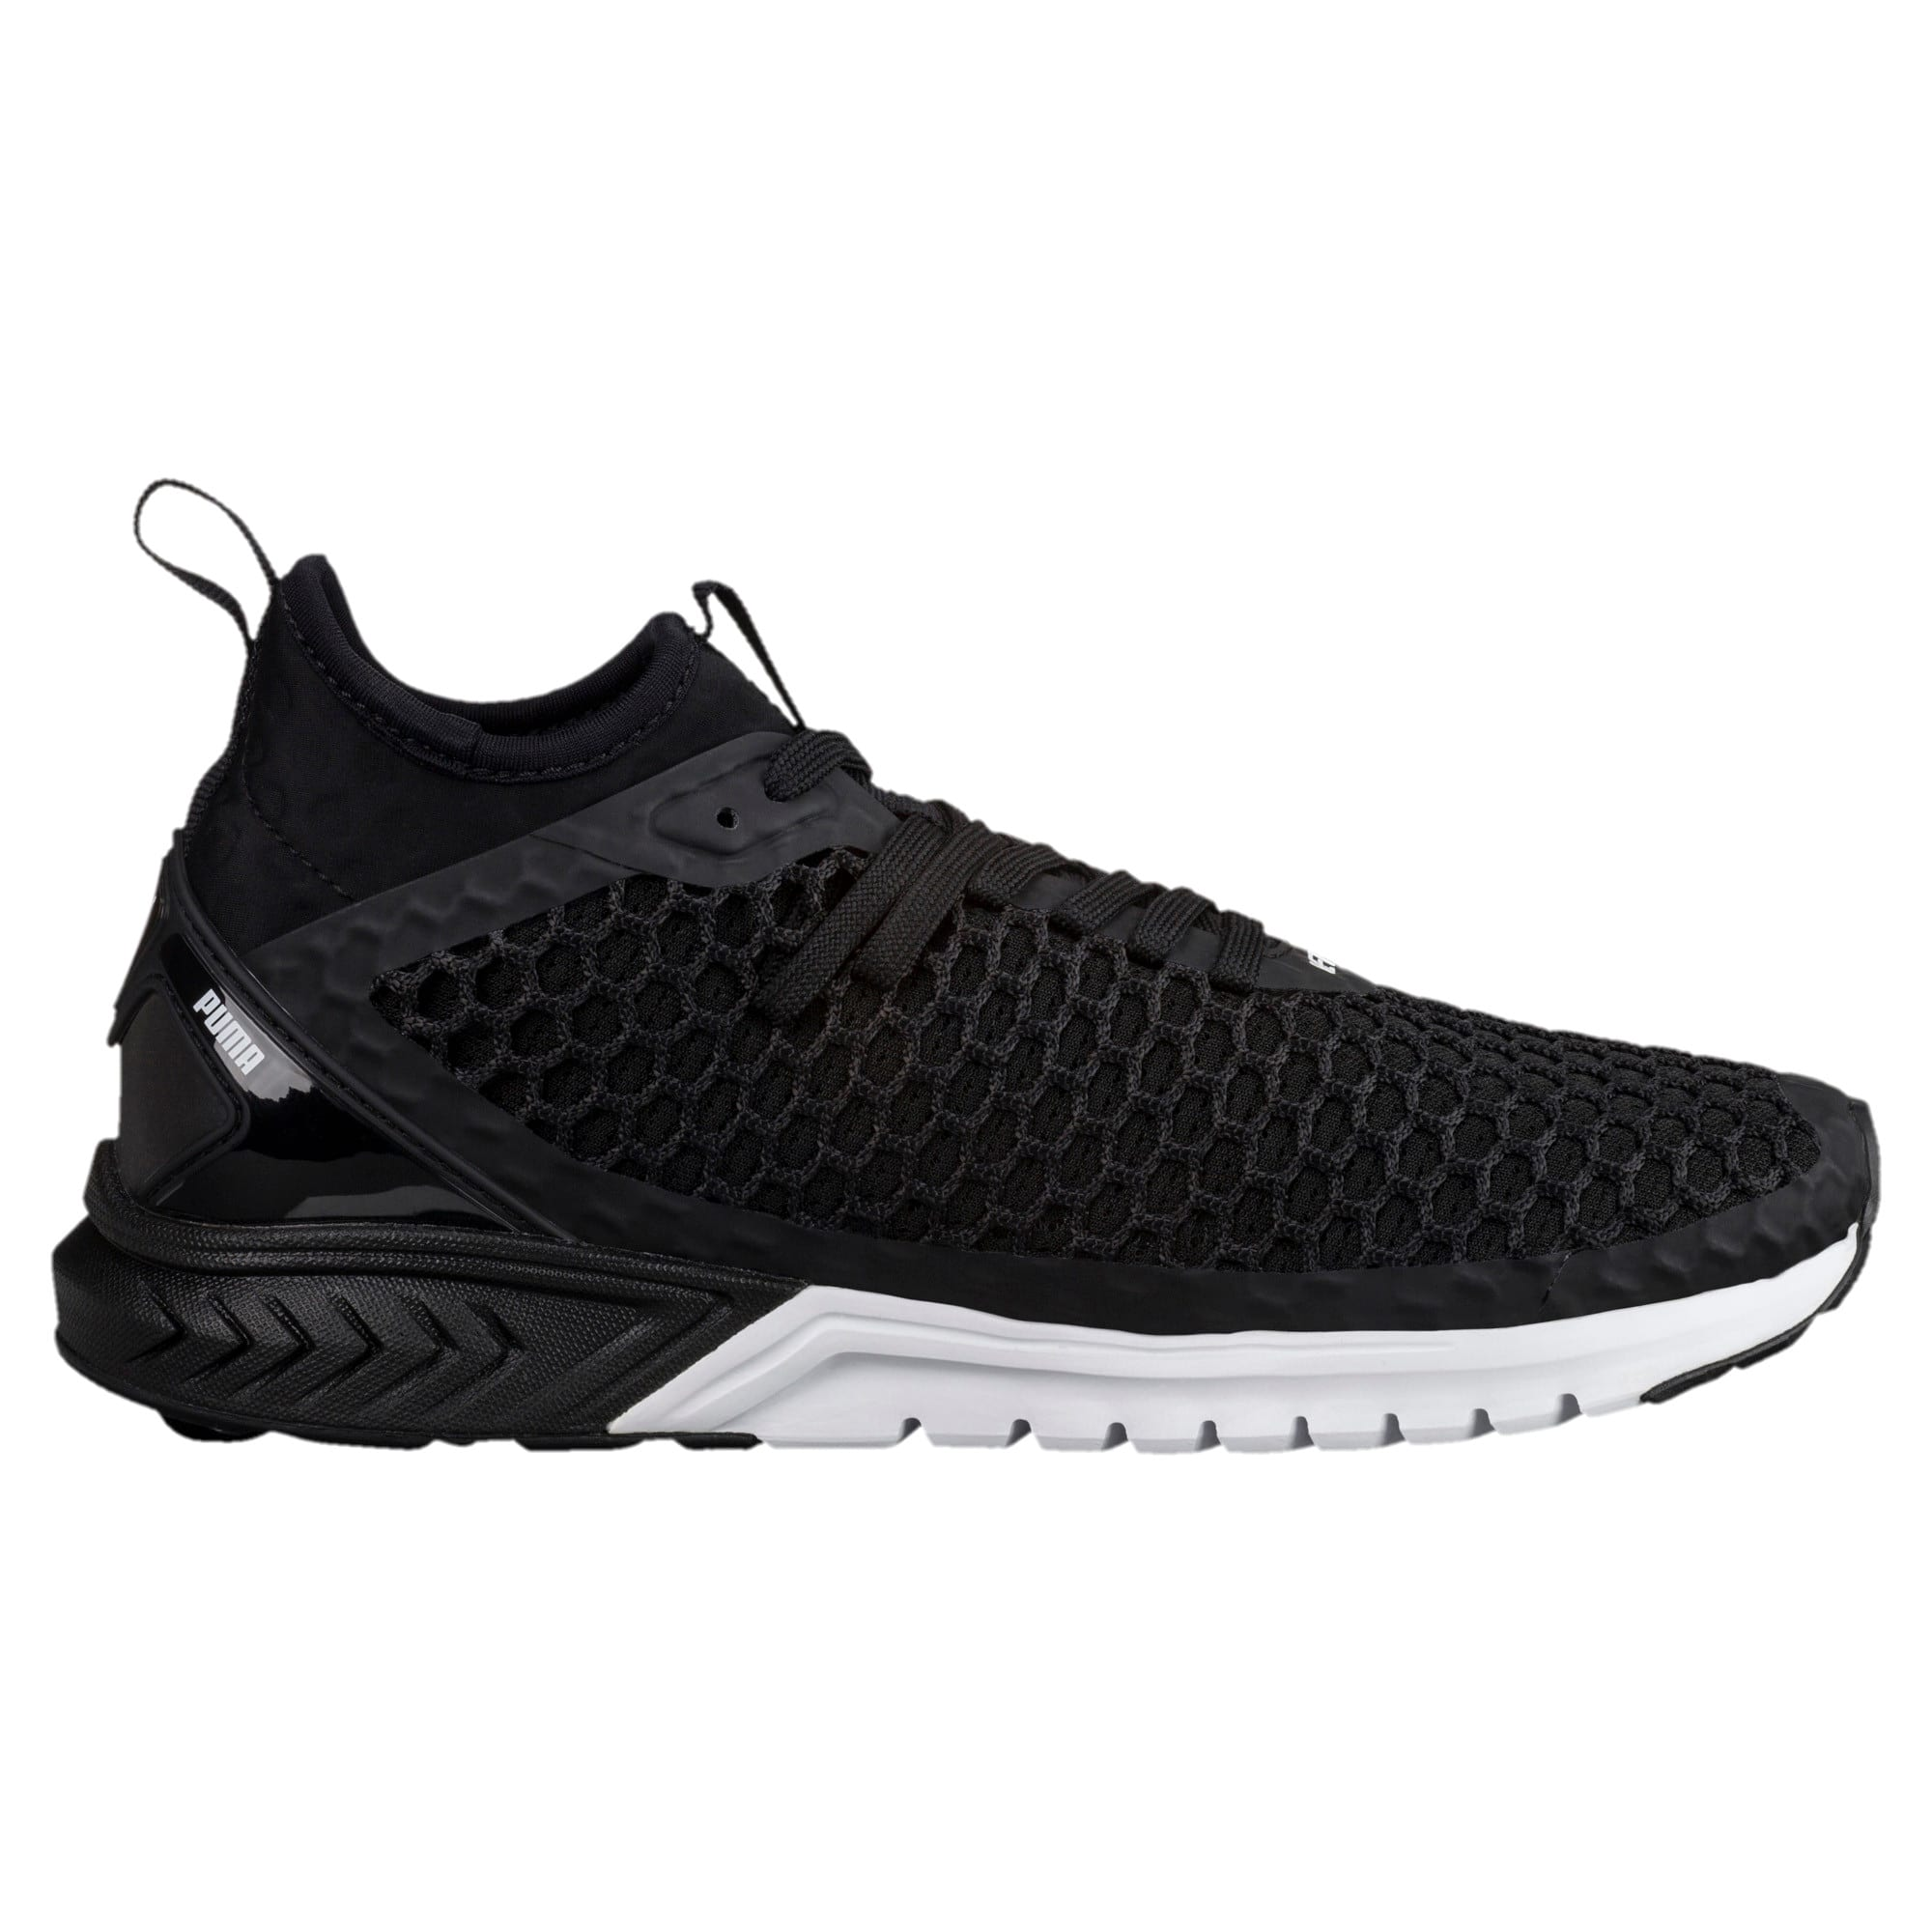 Thumbnail 3 of IGNITE Dual NETFIT Women's Running Shoes, Puma Black-Puma White, medium-IND